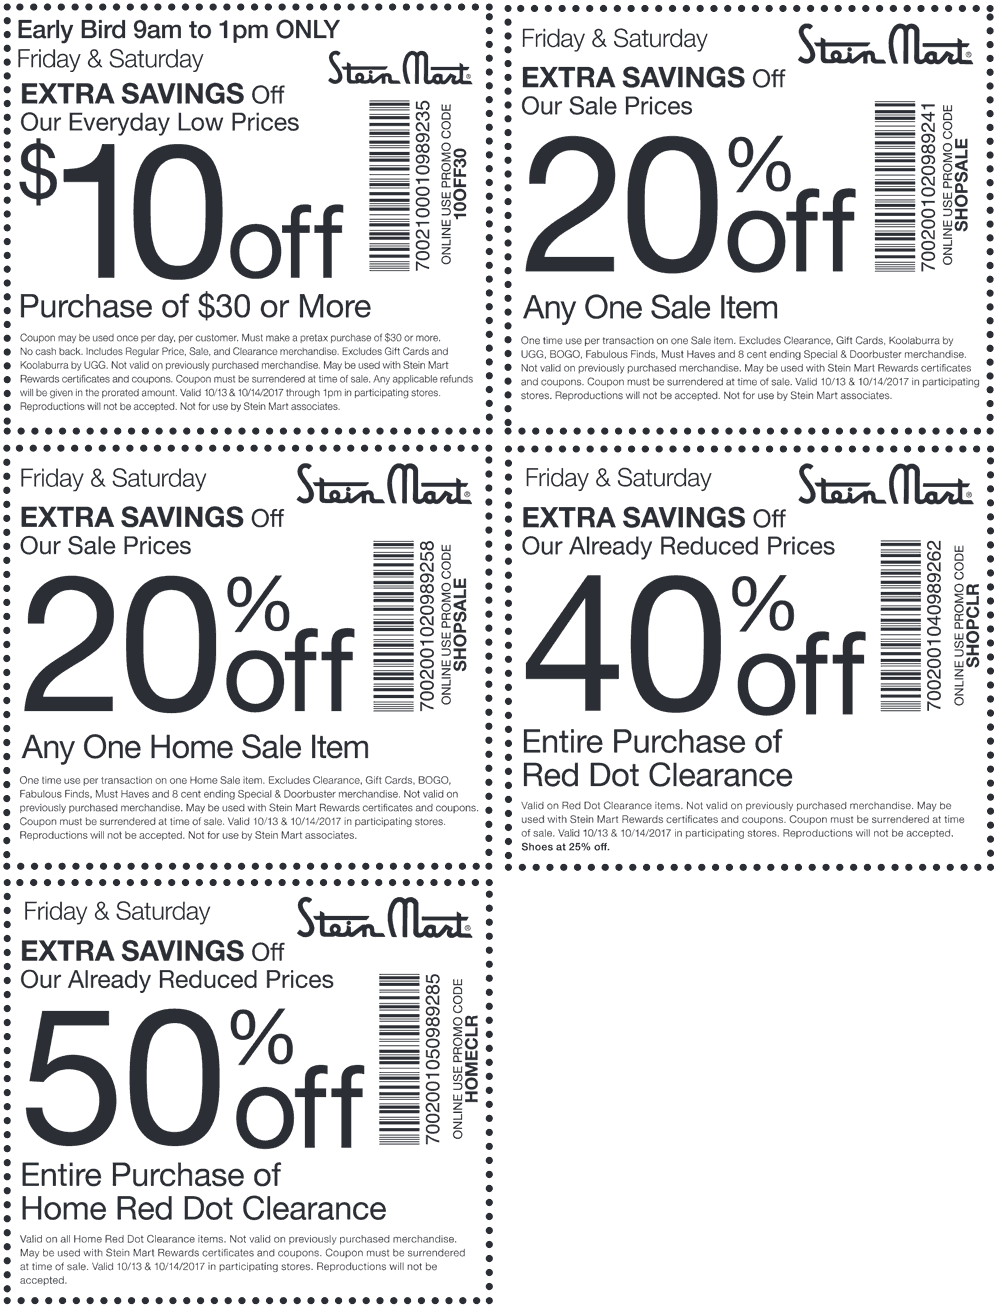 SteinMart.com Promo Coupon $10 off $30 & more today at Stein Mart, or online via promo code 10OFF30